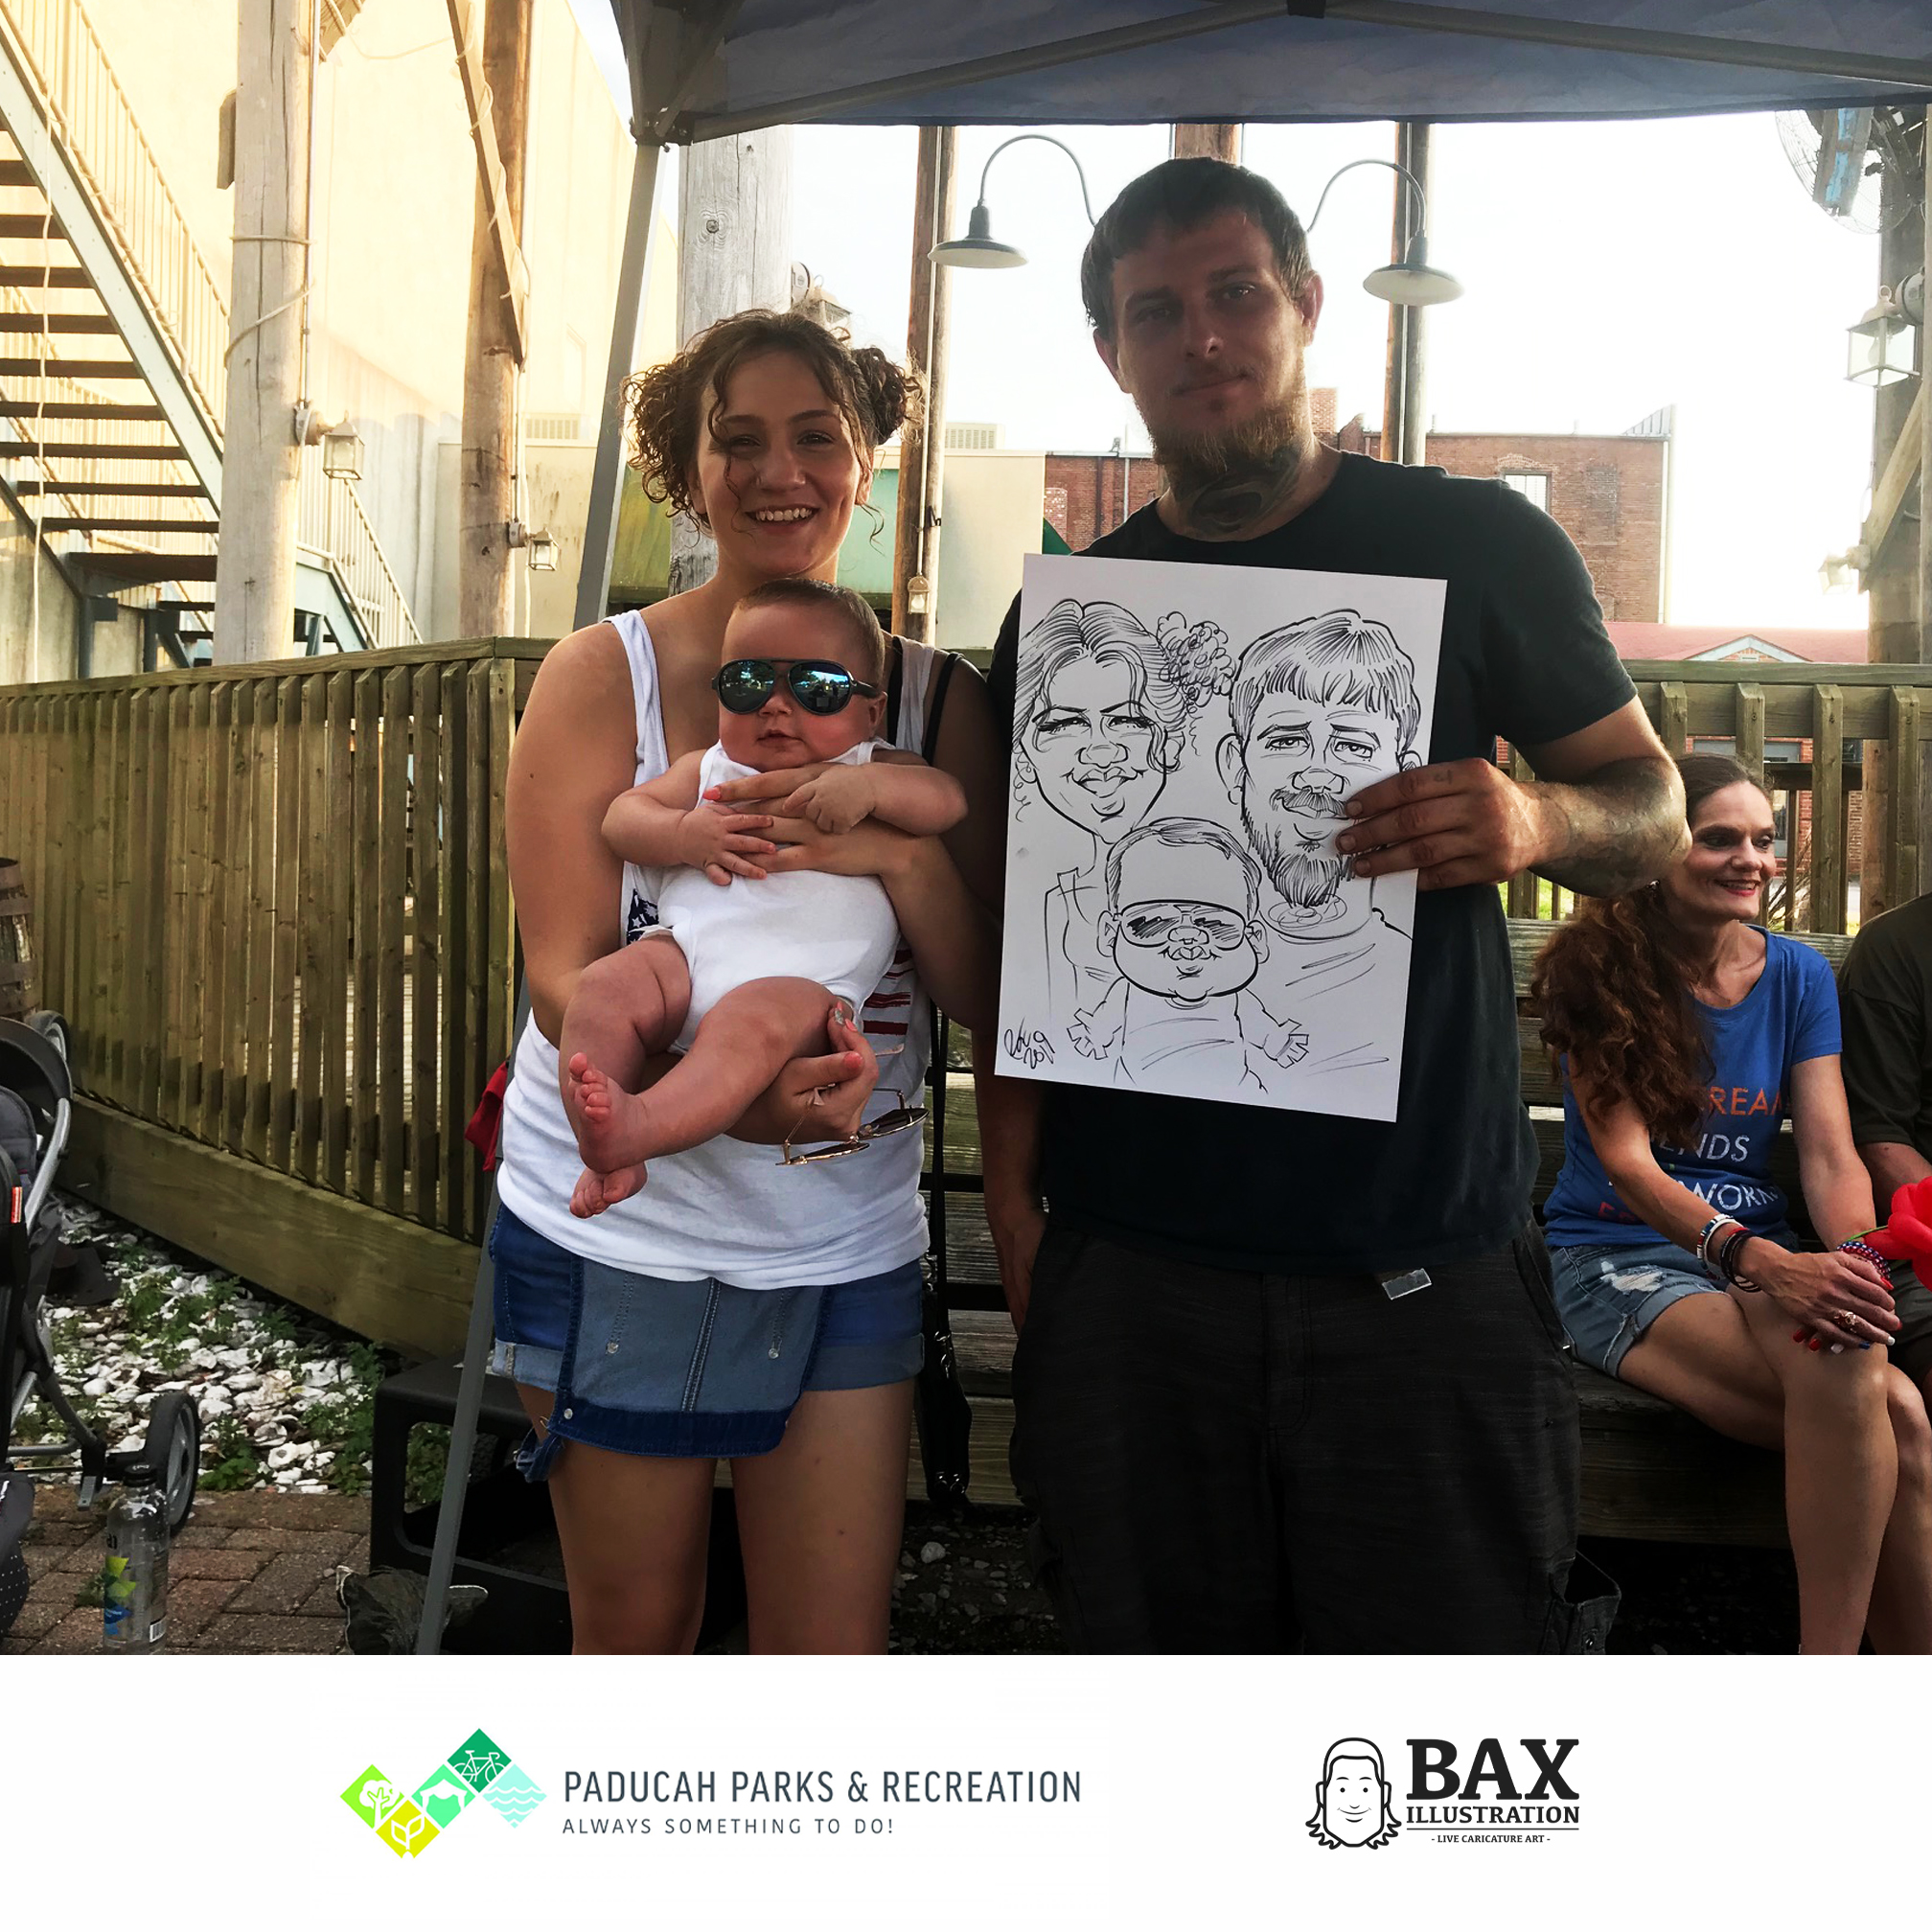 Couple holding baby and caricature by Bax Illustration in Paducah Kentucky at the 2019 Independence Day Celebration